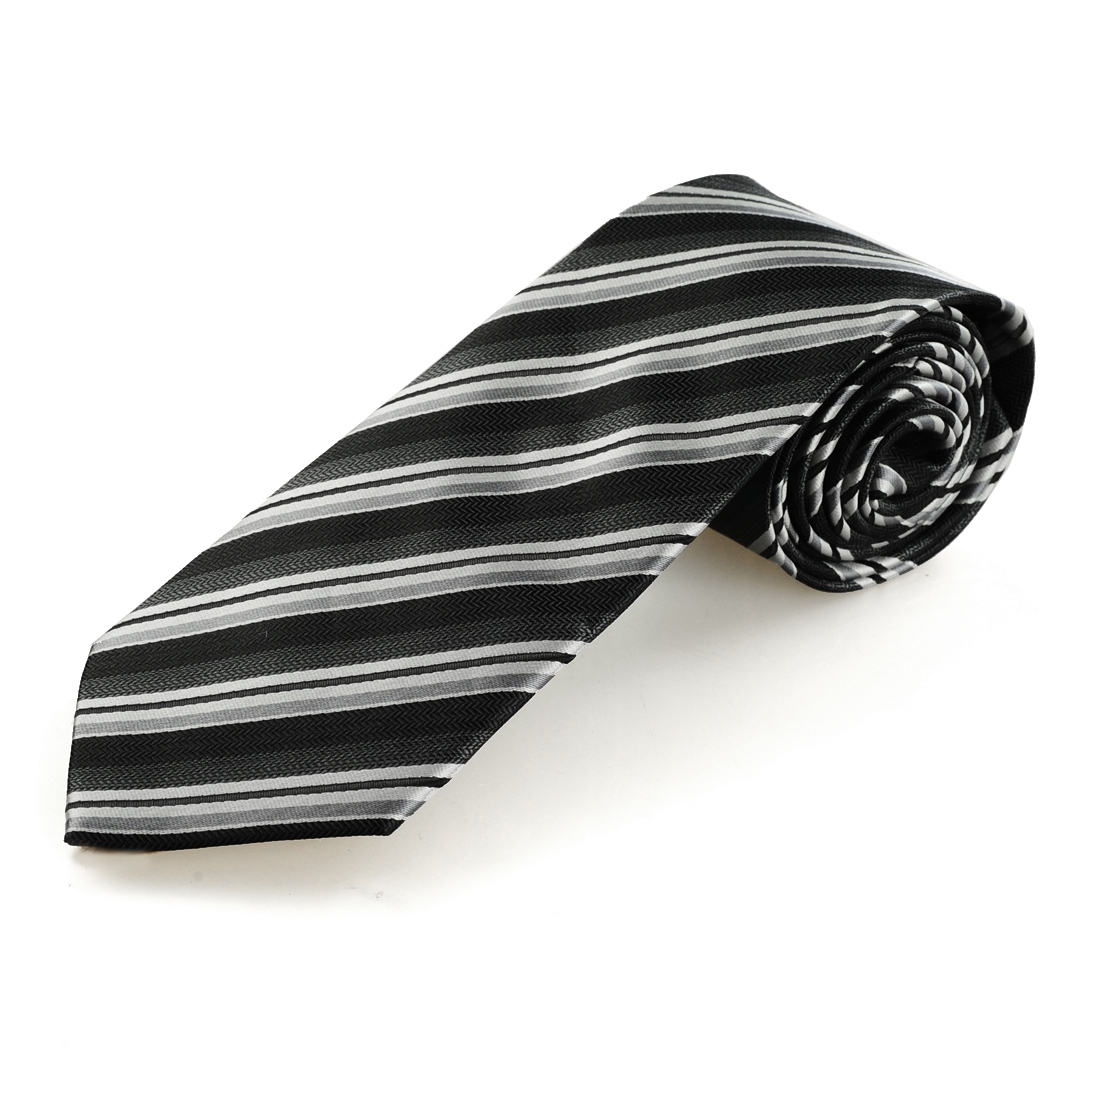 8.5cm Width Gray Black Slanting Striped Self Tie Necktie for Bridegroom